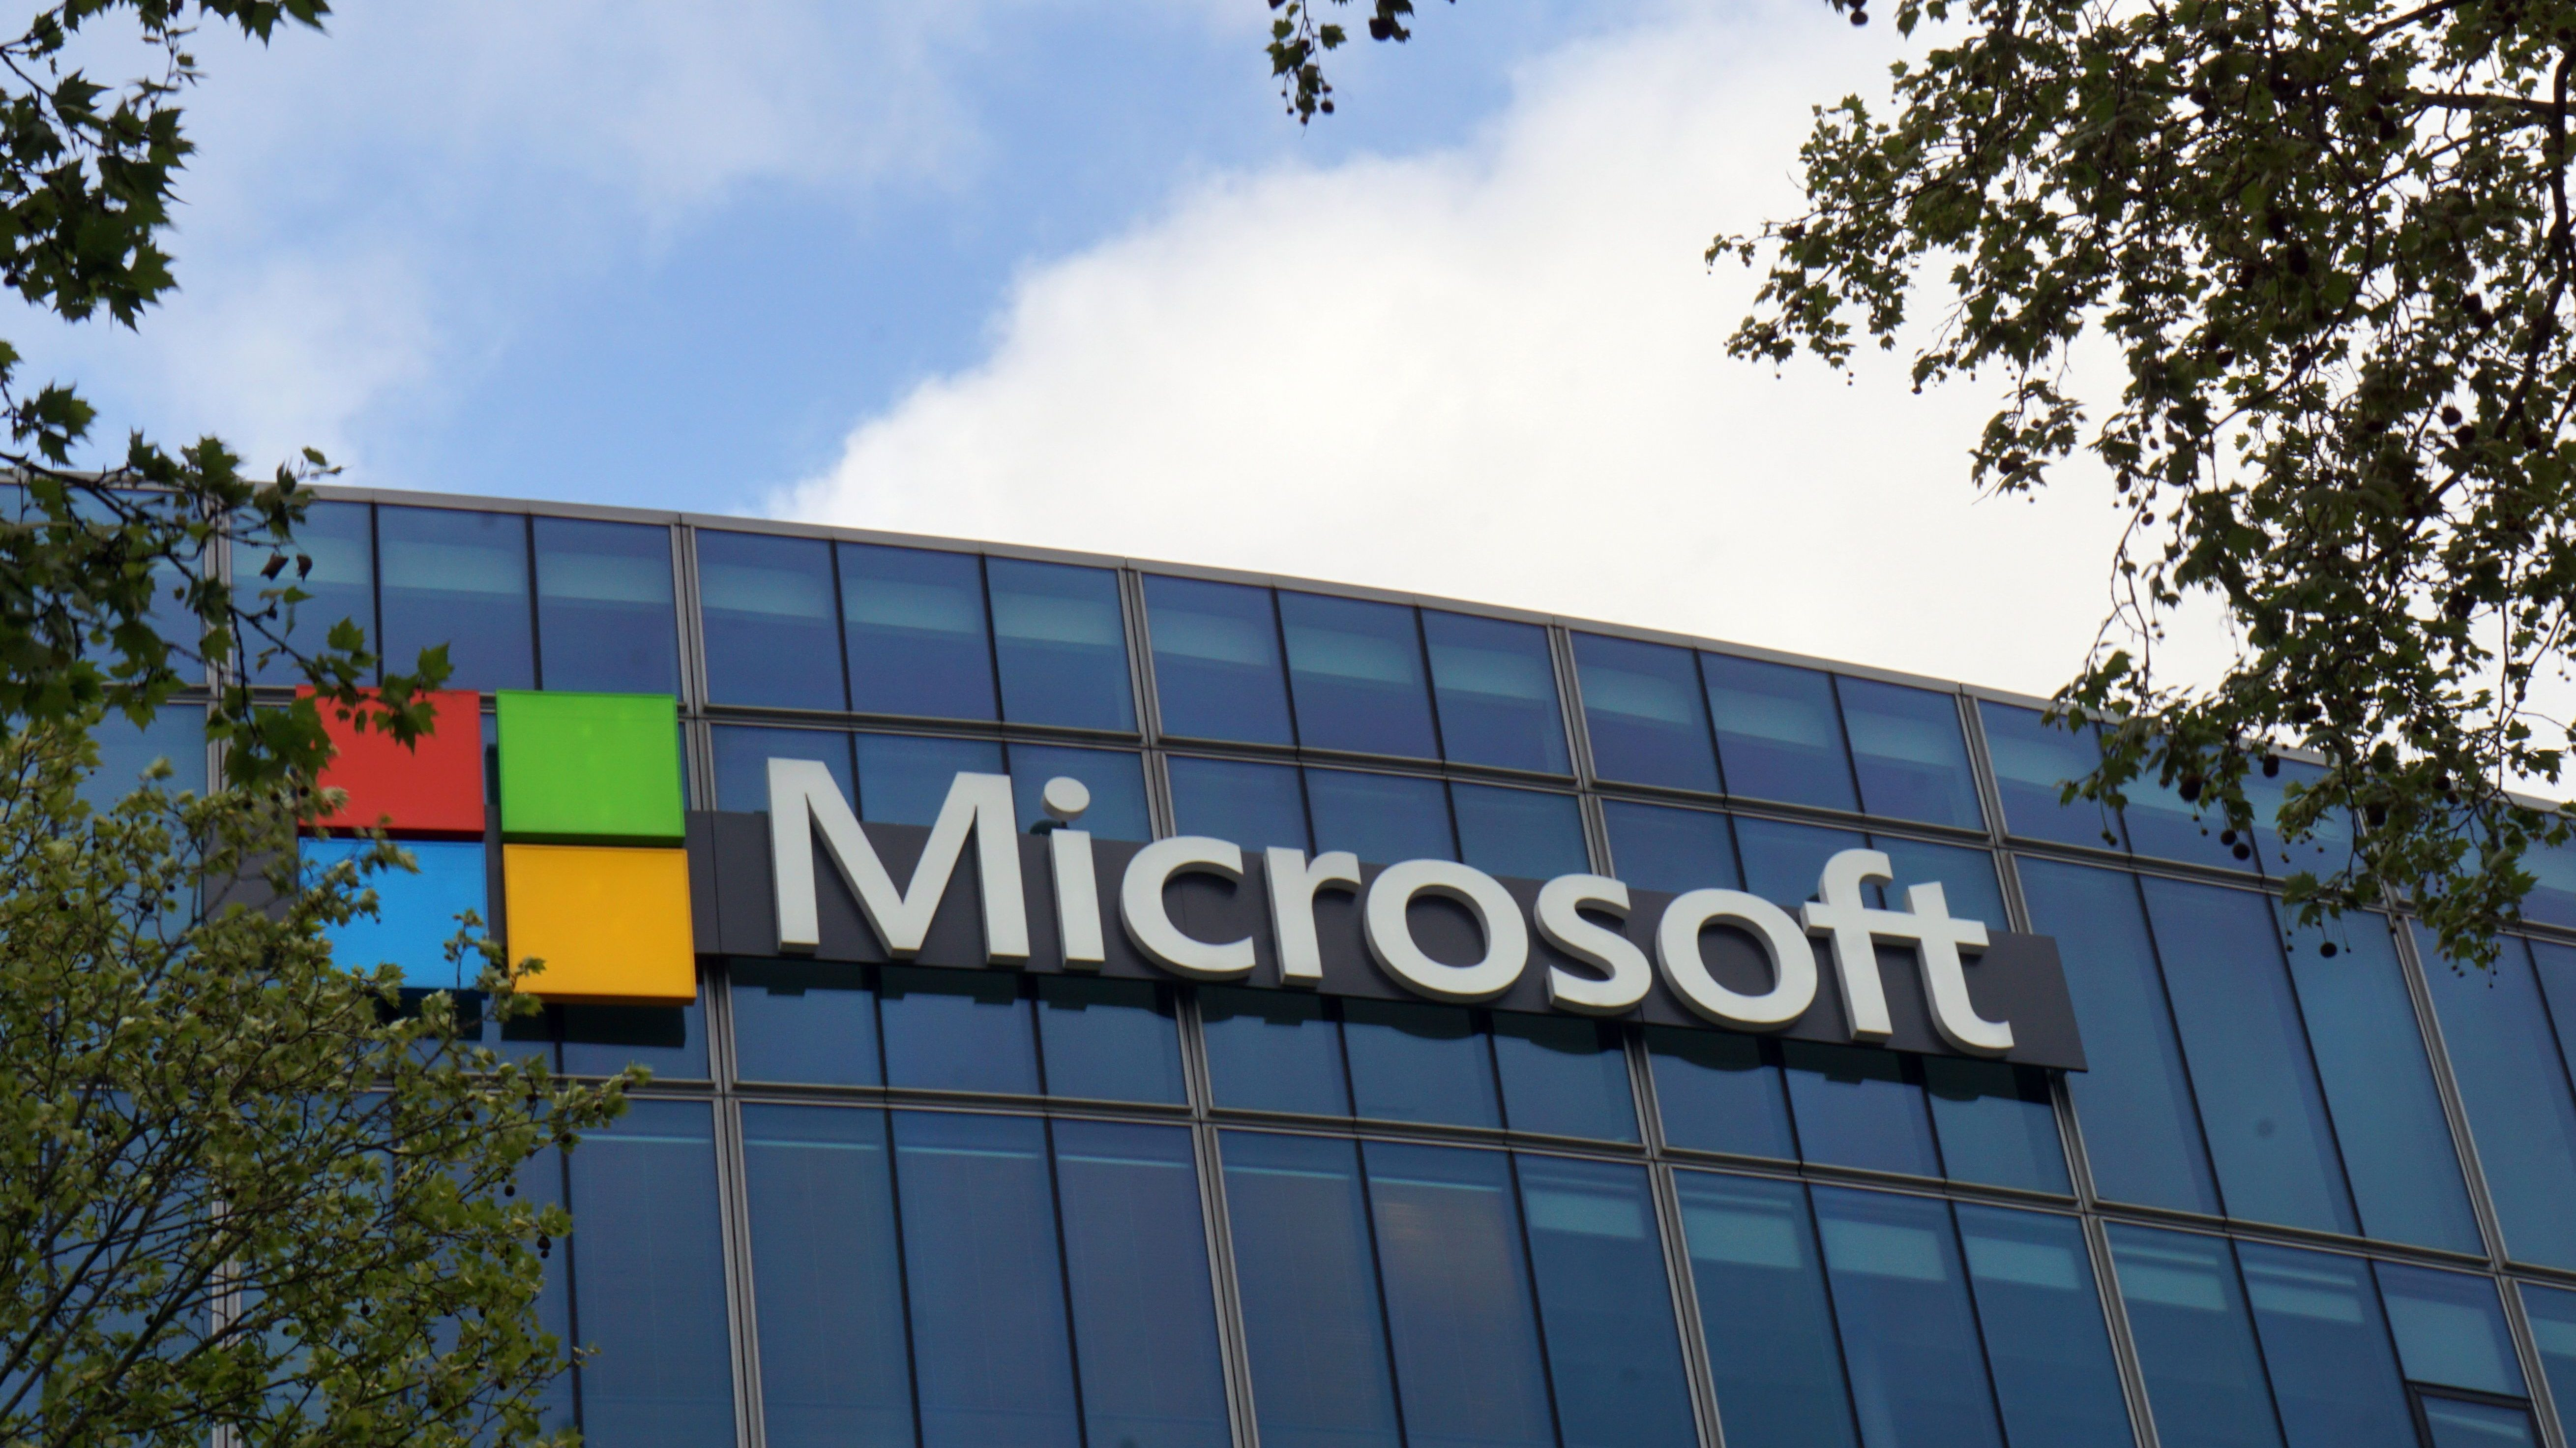 Microsoft Teams is quickly gaining ground on Slack